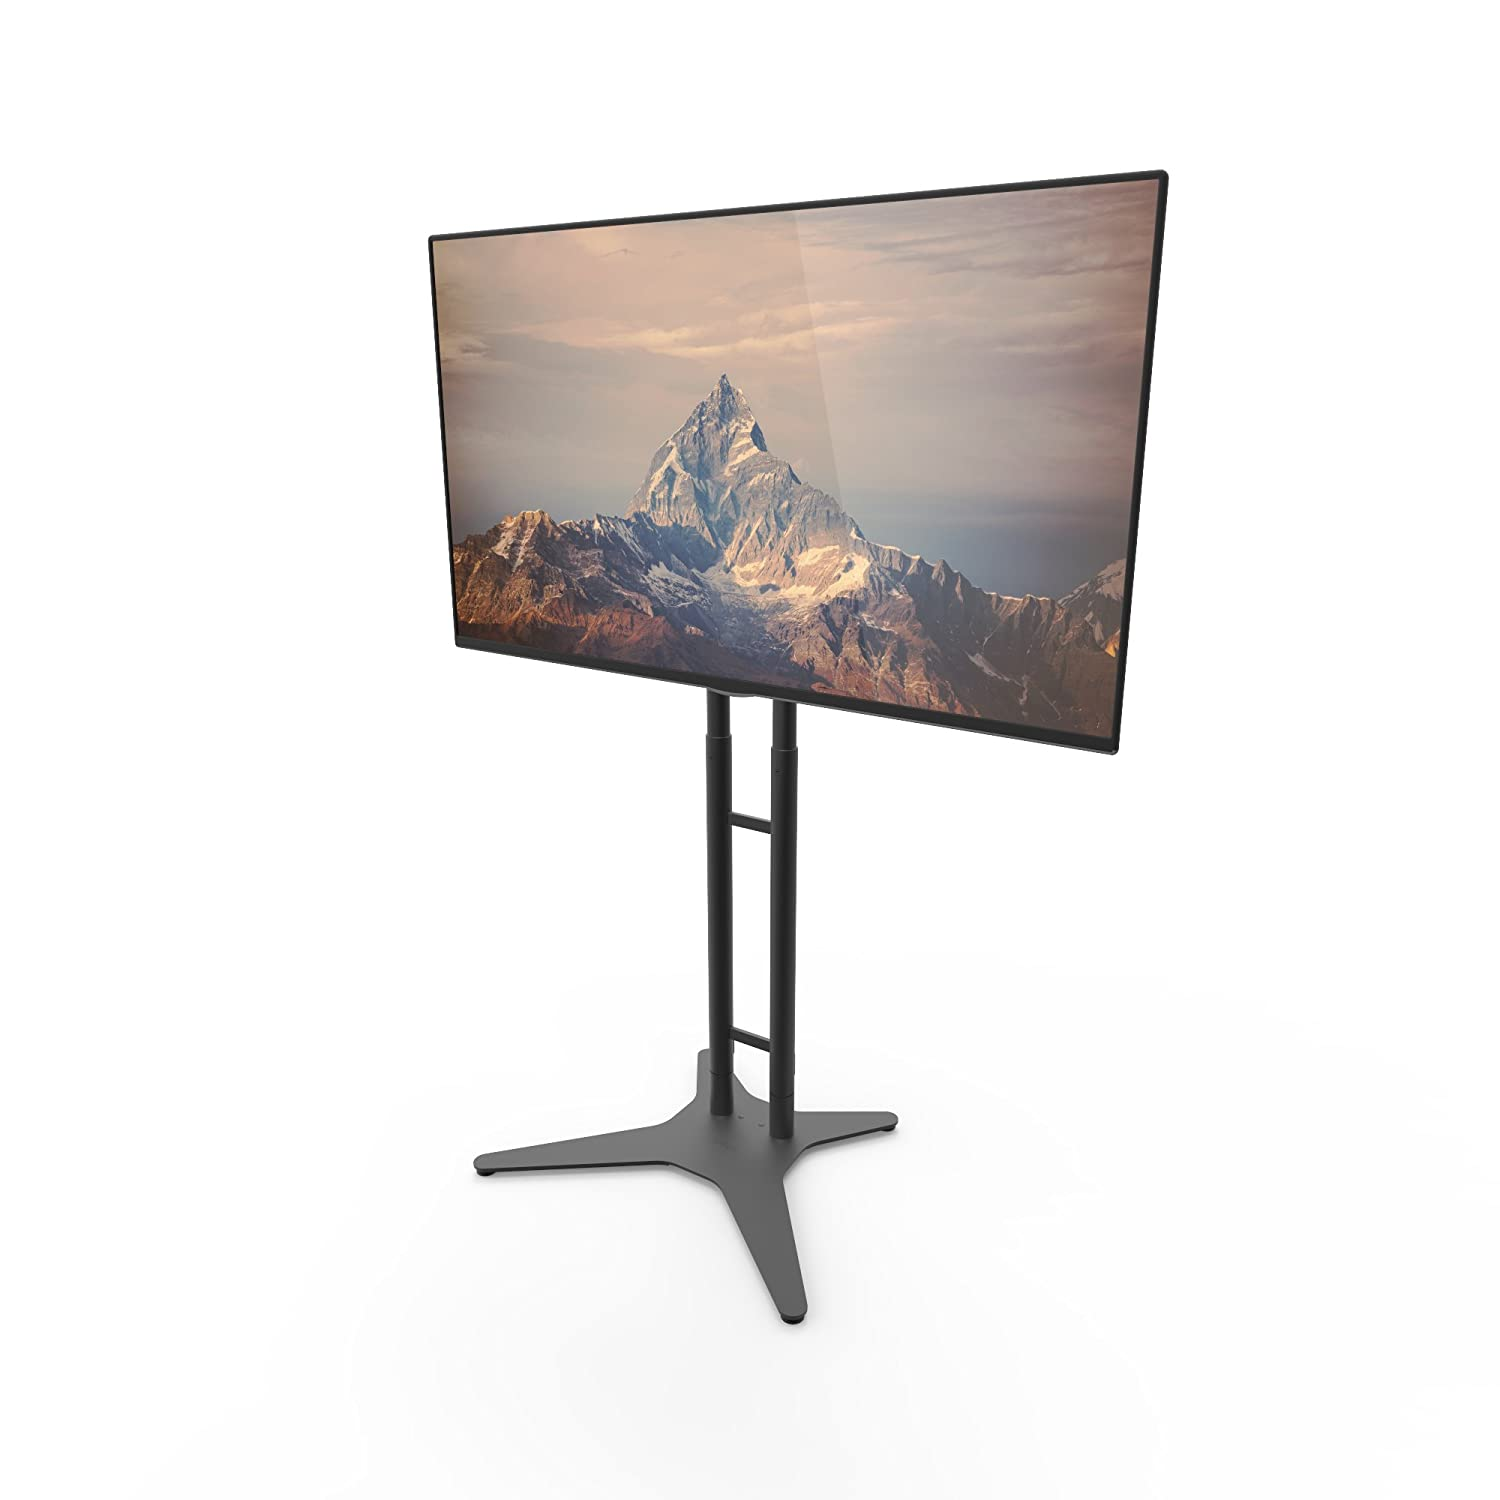 Kanto STM55 TV Floor Stand for 32-inch to 55-inch TVs